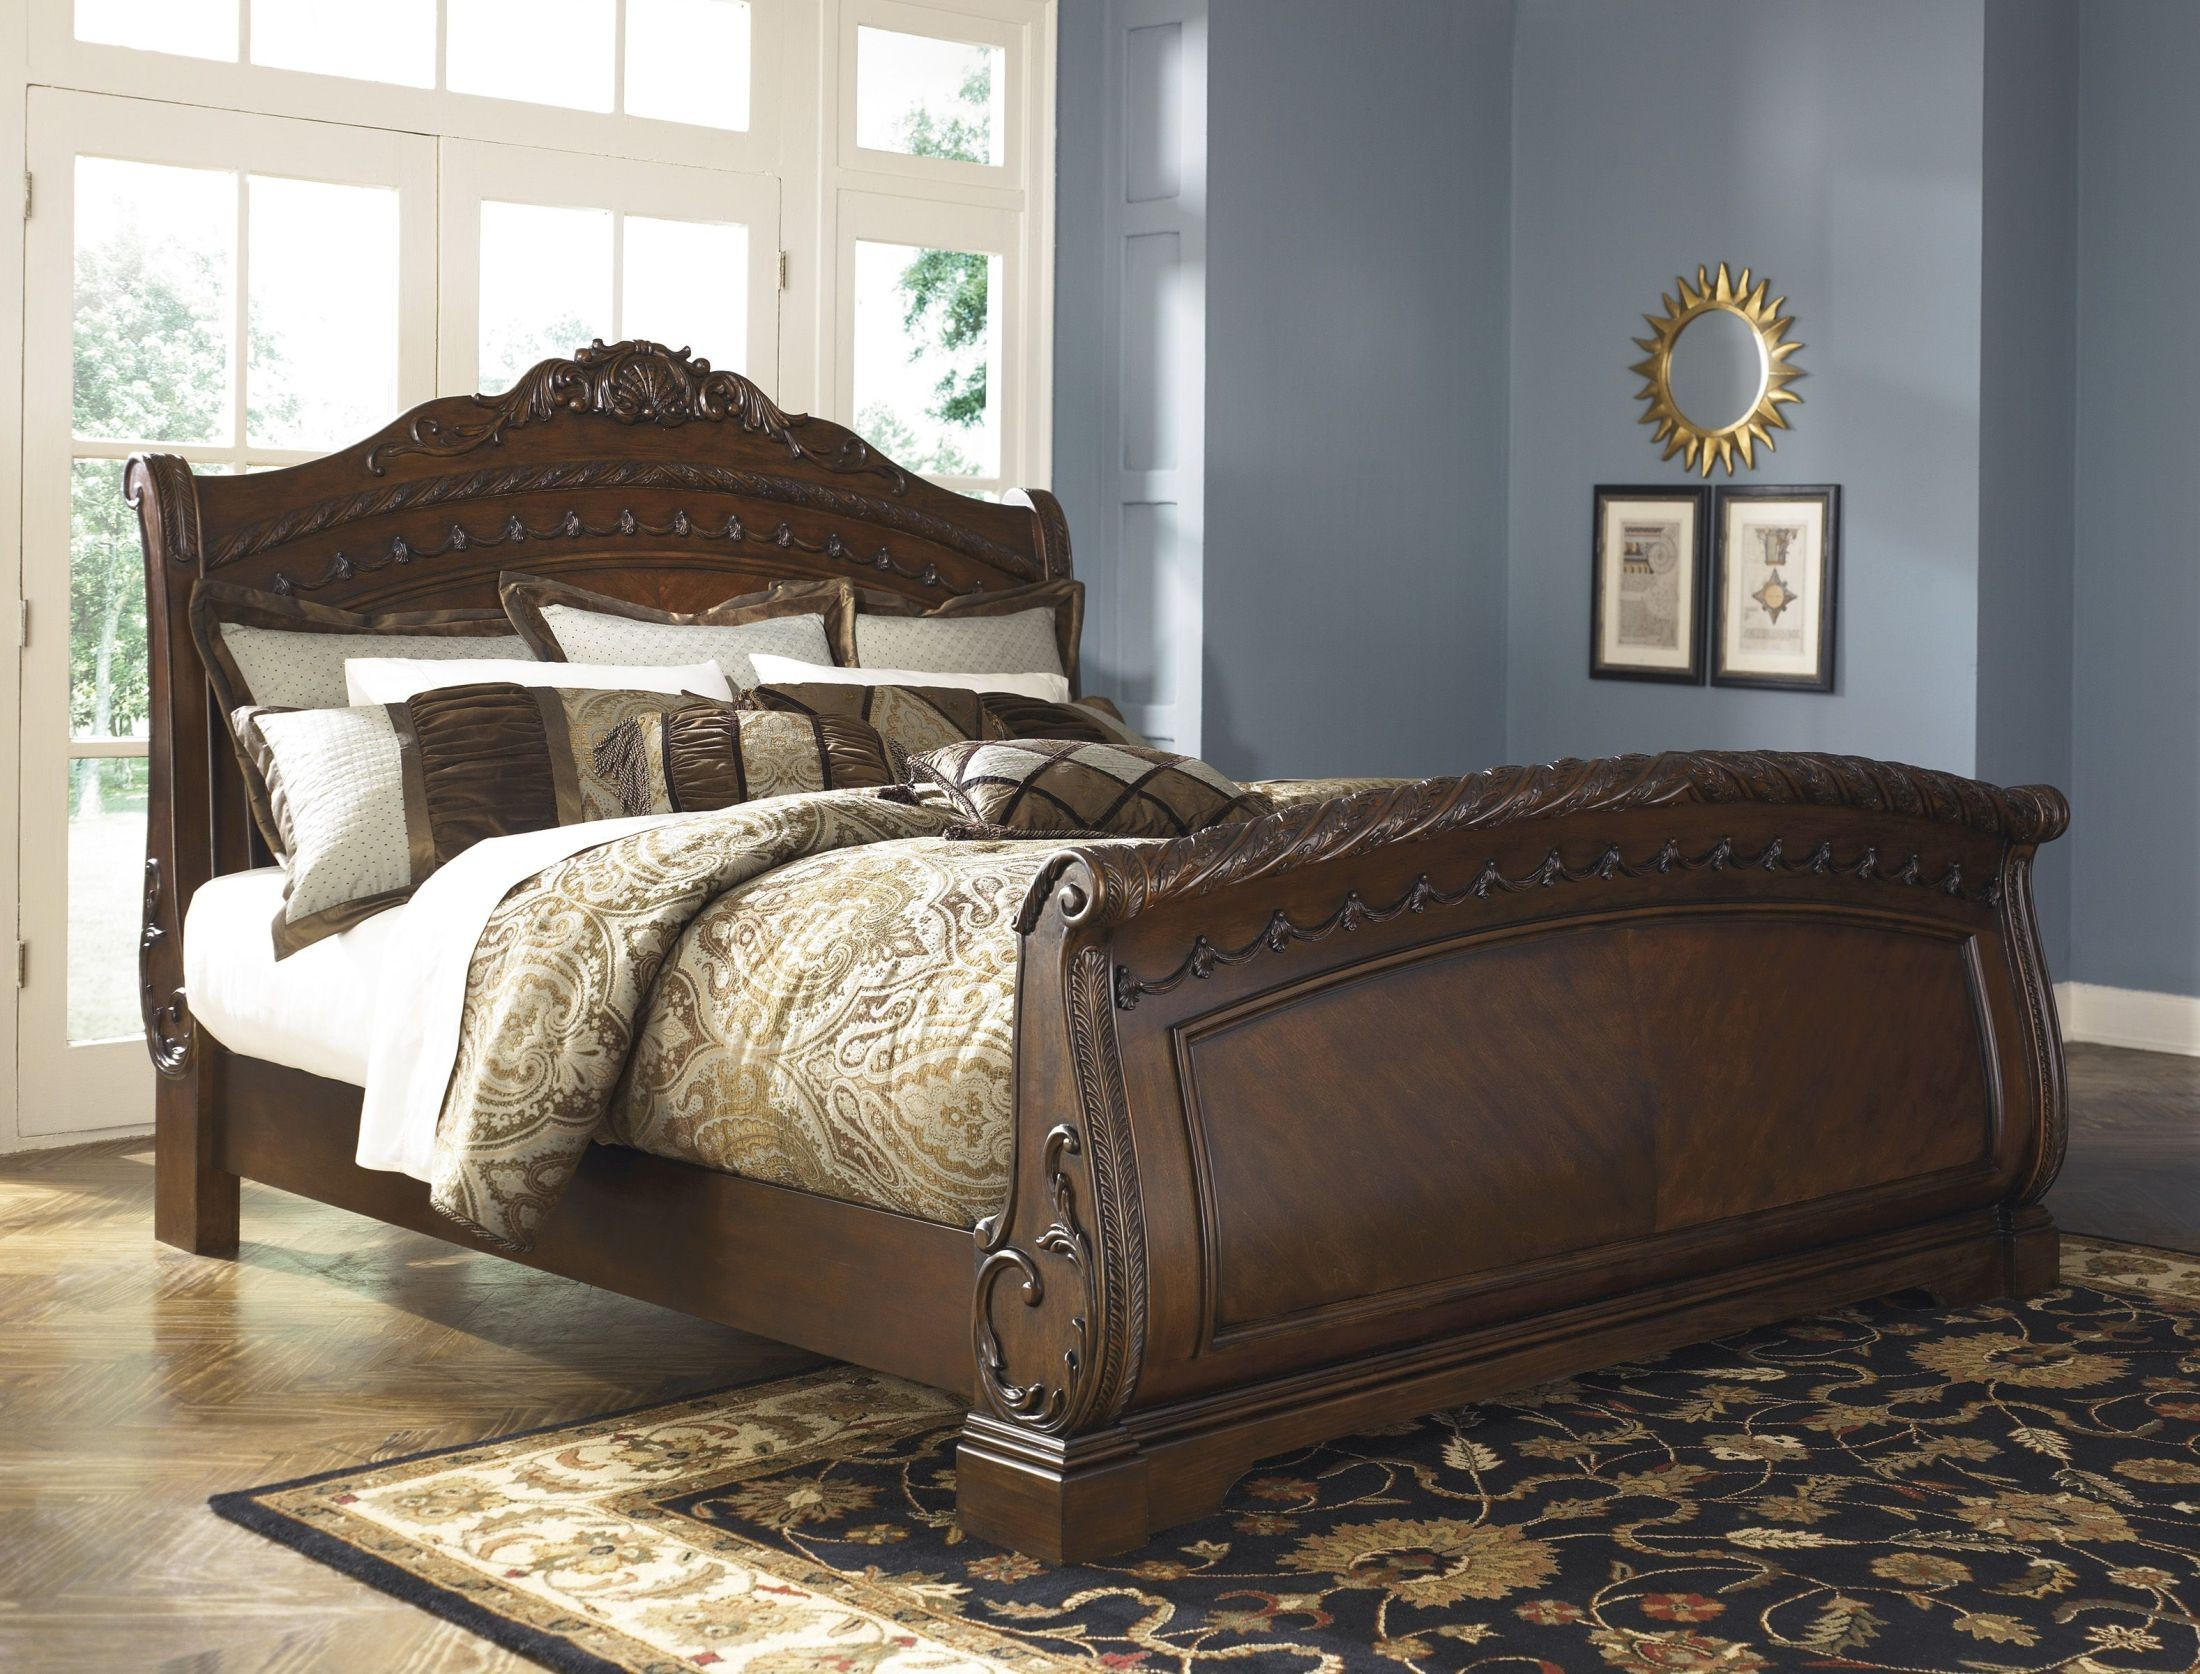 trishley pin ashley furniture beds farm bed frame pinterest house queen